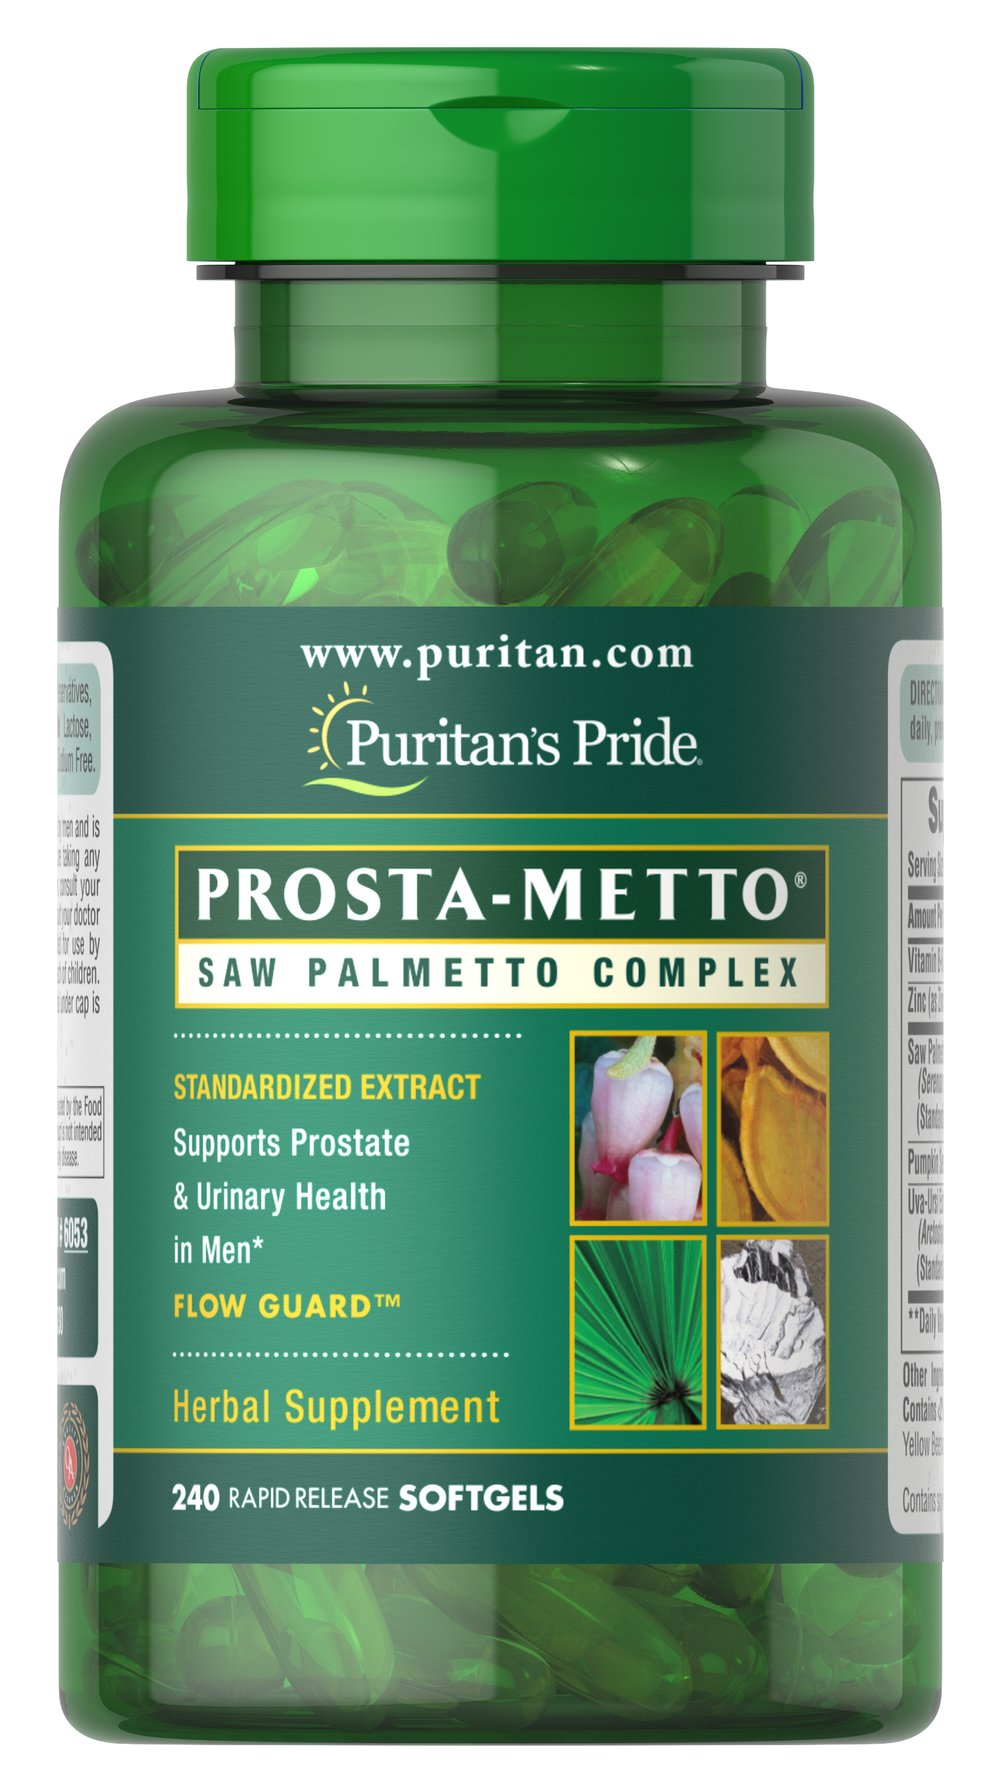 Prosta-Metto® Saw Palmetto Complex For Men <p>Extra Strength Prosta-Metto® softgels deliver 160 mg of standardized Saw Palmetto to support prostate and urinary health in men.** Saw Palmetto is an extract derived from the berry of the Saw Palmetto tree and is the leading herb for men's health.** This formulation also includes Pumpkin Seed Oil, and Uva-Ursi, traditional ingredients for men's health, plus Zinc for the immune system.** </p> 240 Softgels  $28.19